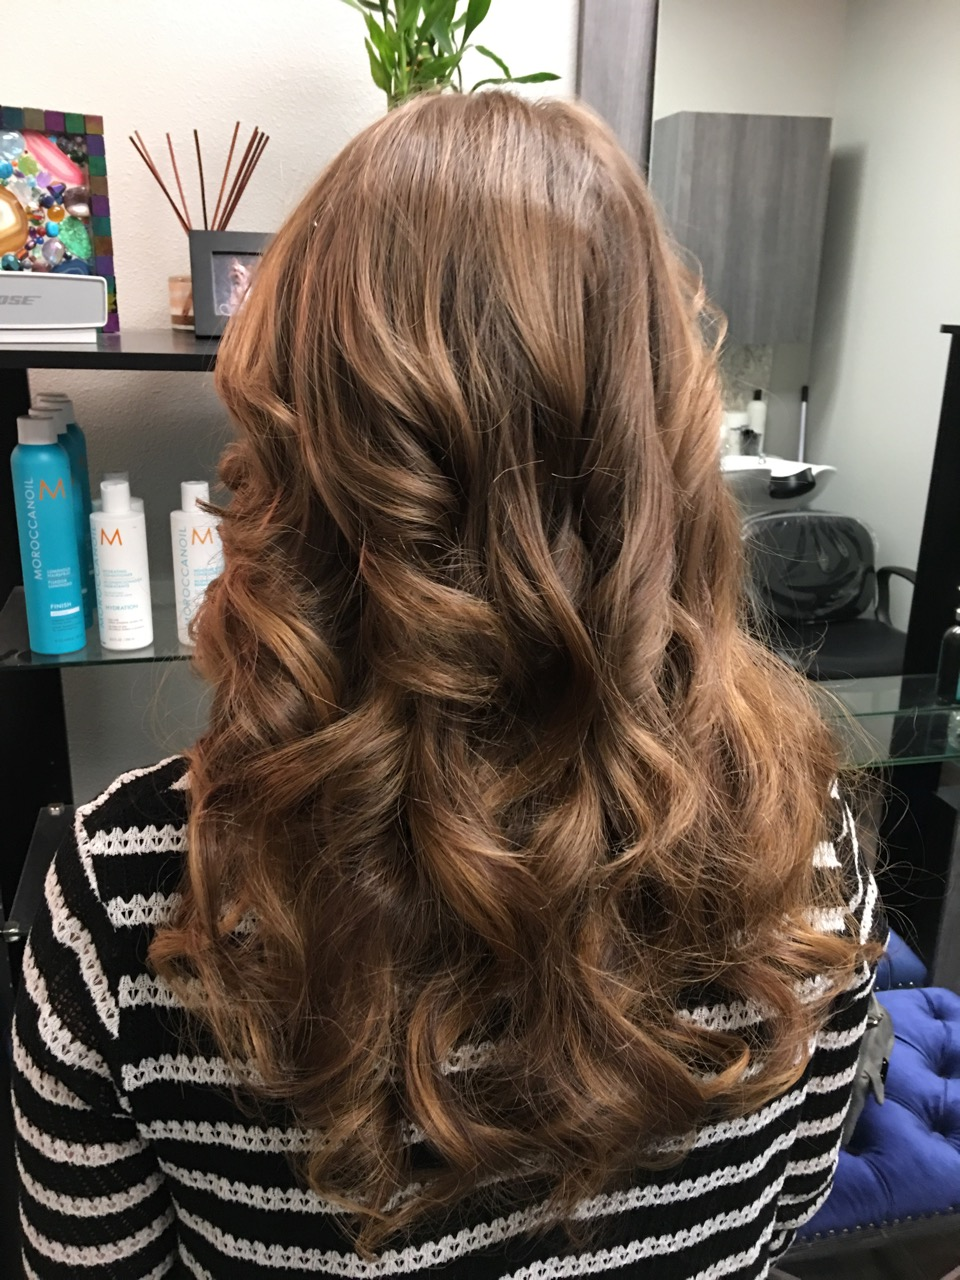 Minneapolis Hair Extensions Photo Gallery 2